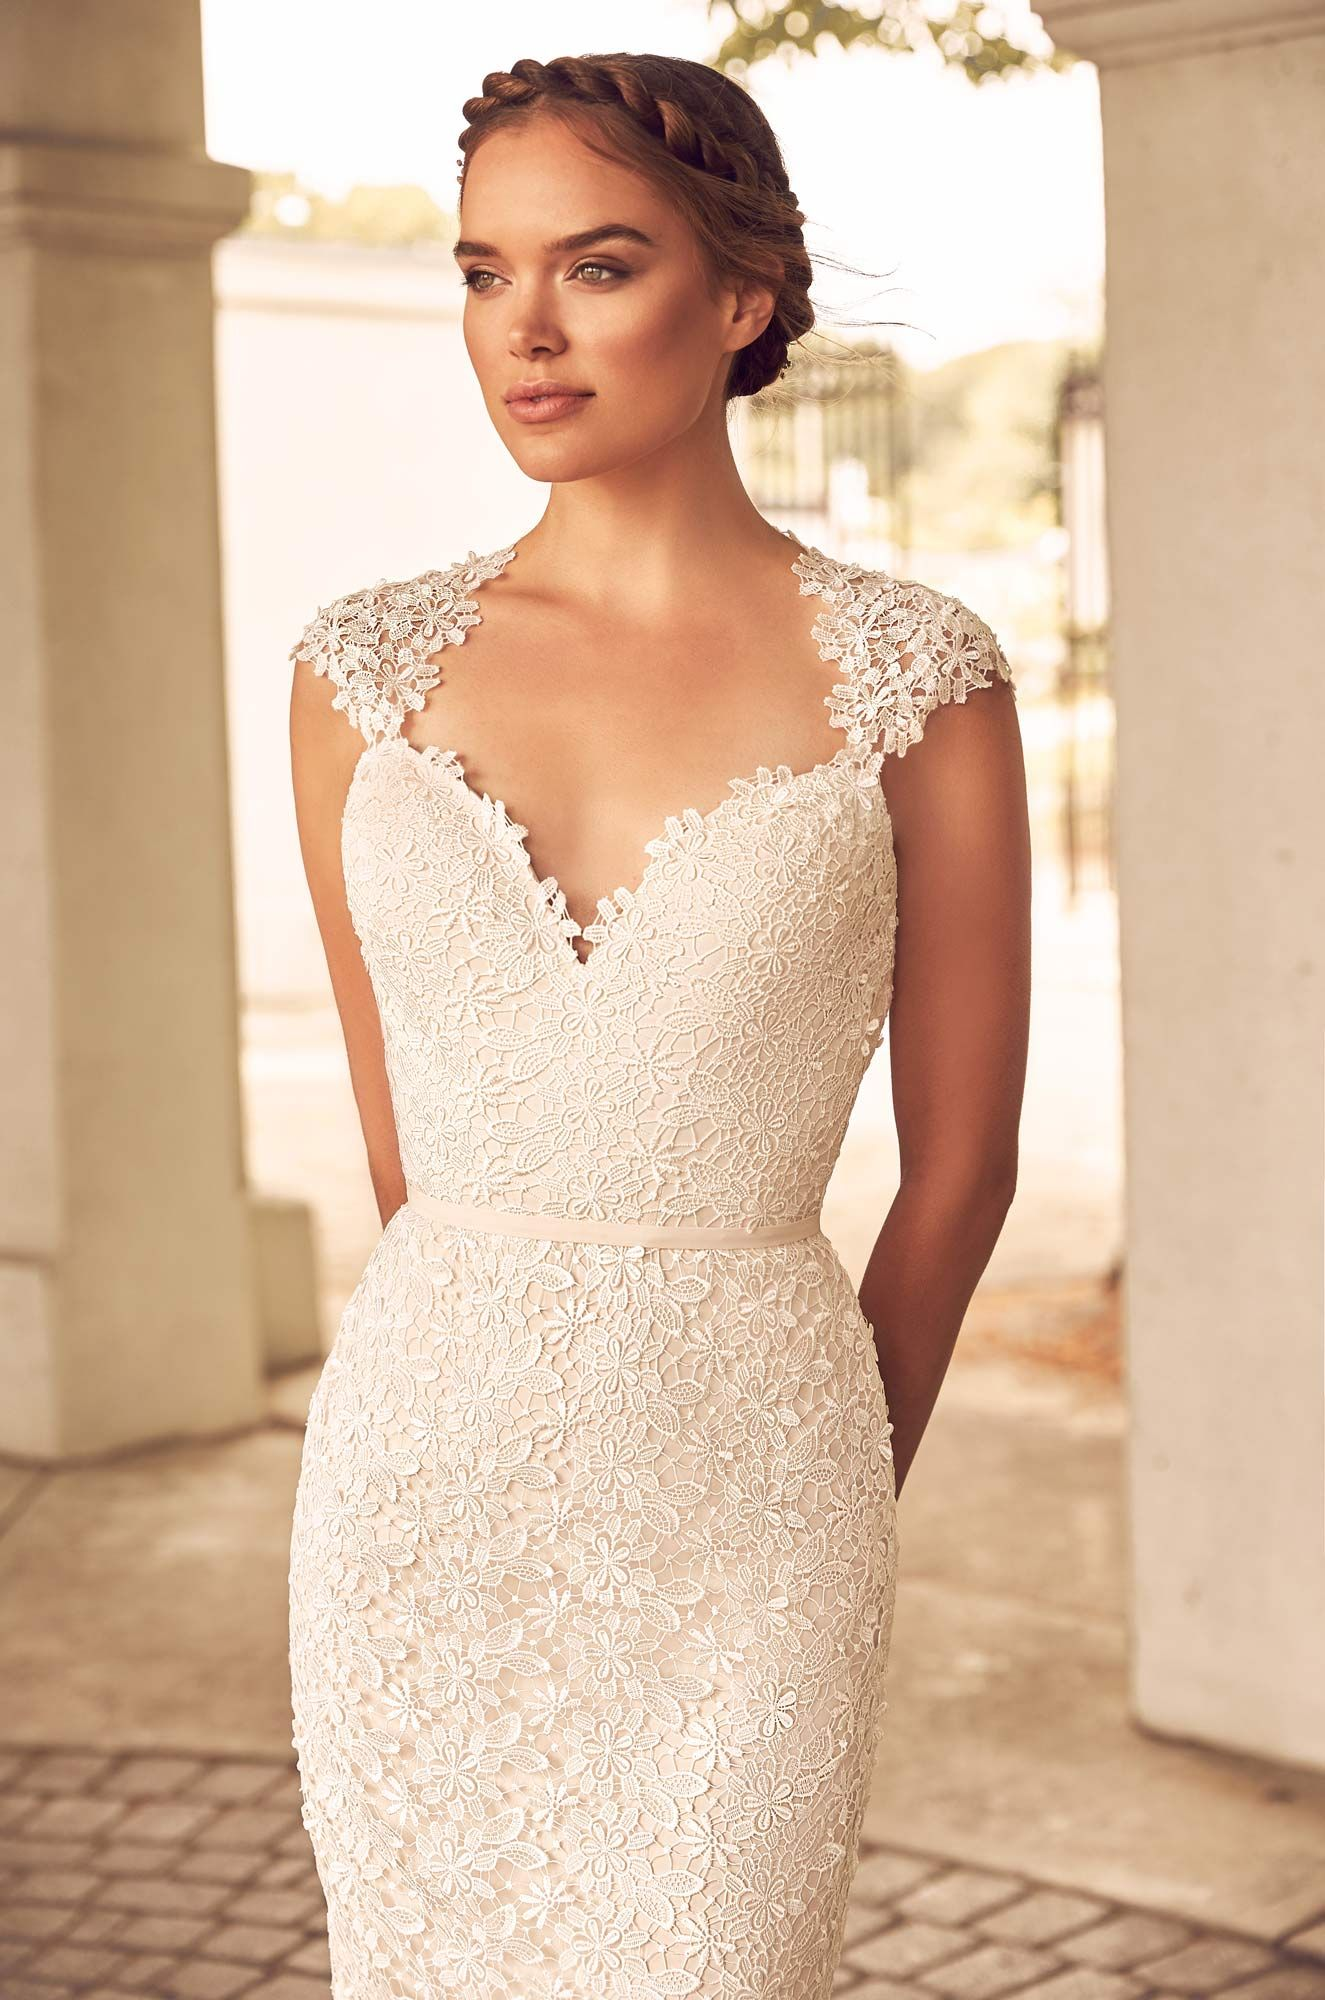 Floral Lace Wedding Dress - Style #4784 | Pinterest | Lace bodice ...